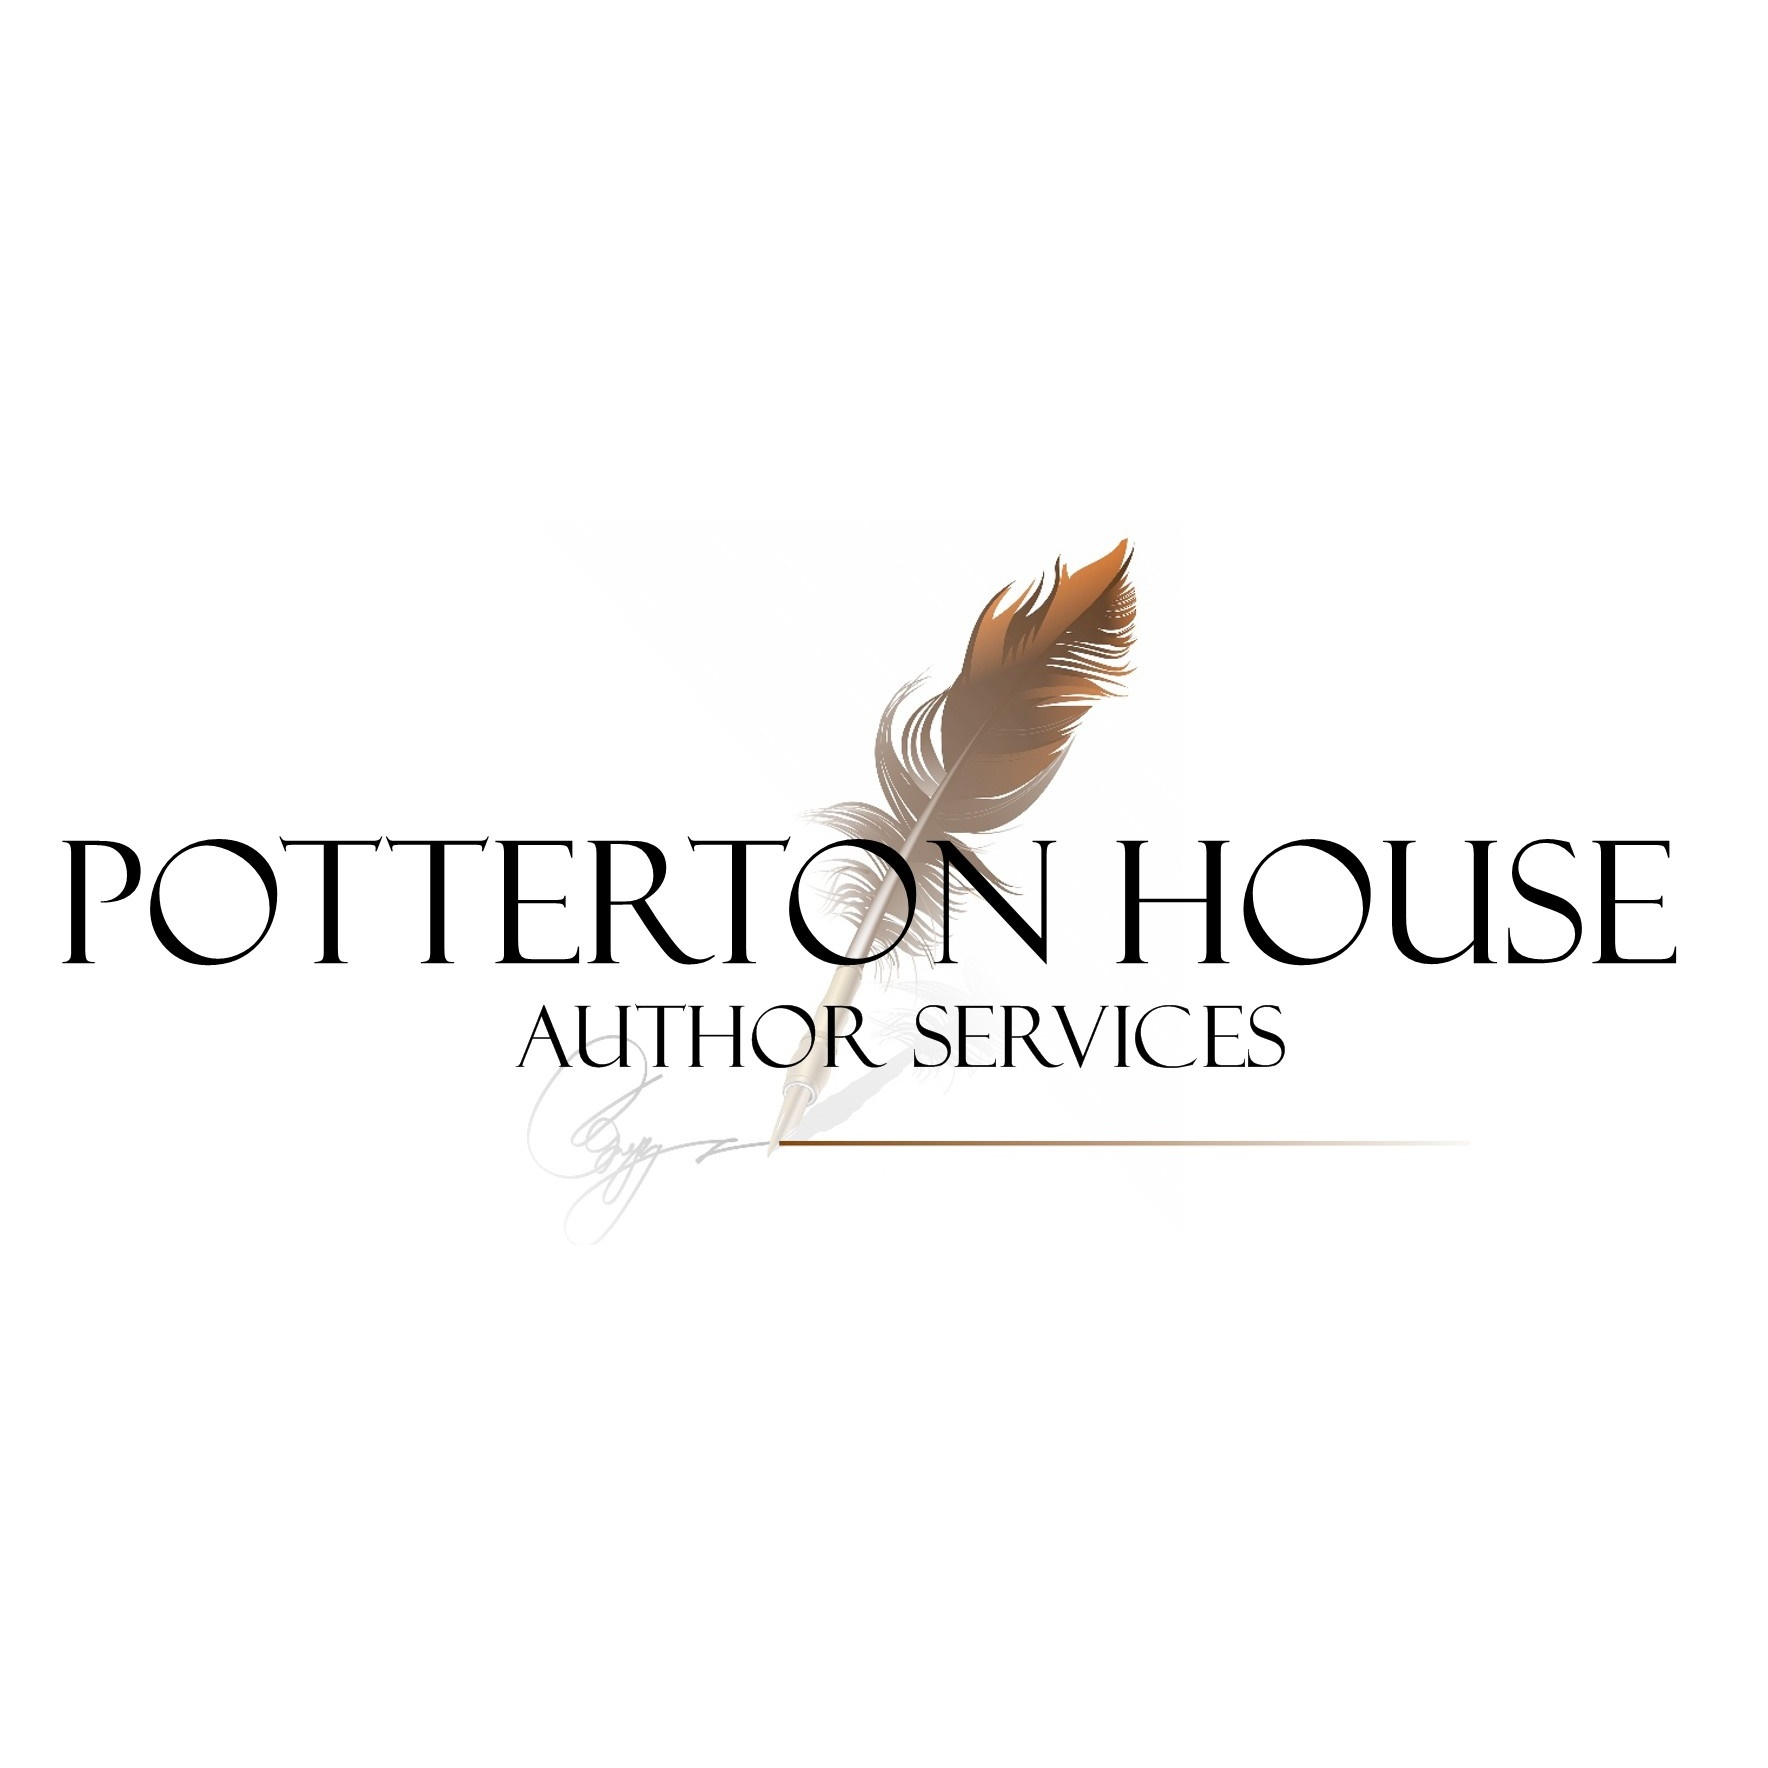 Potterton House Author Services